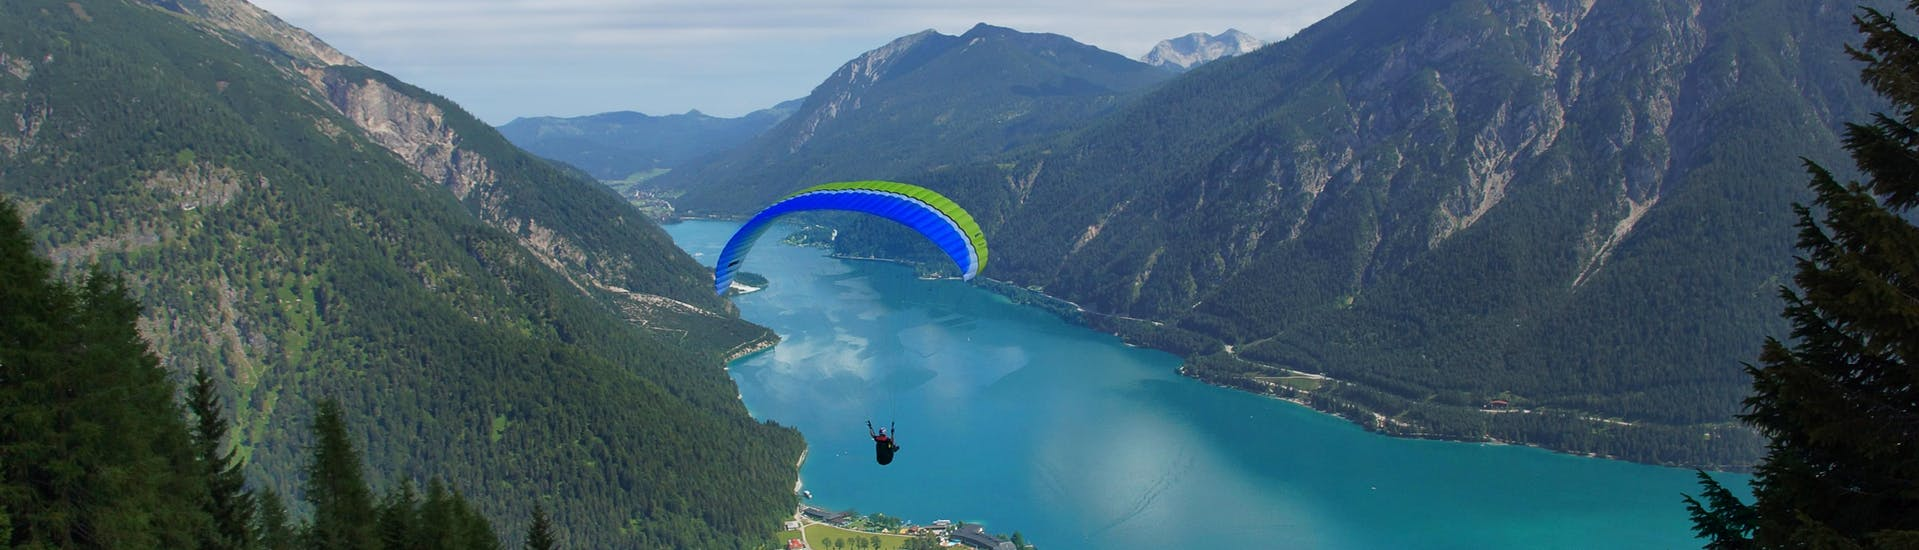 A tandem master and his passenger are sailing through cloudy skies while paragliding in Achensee.